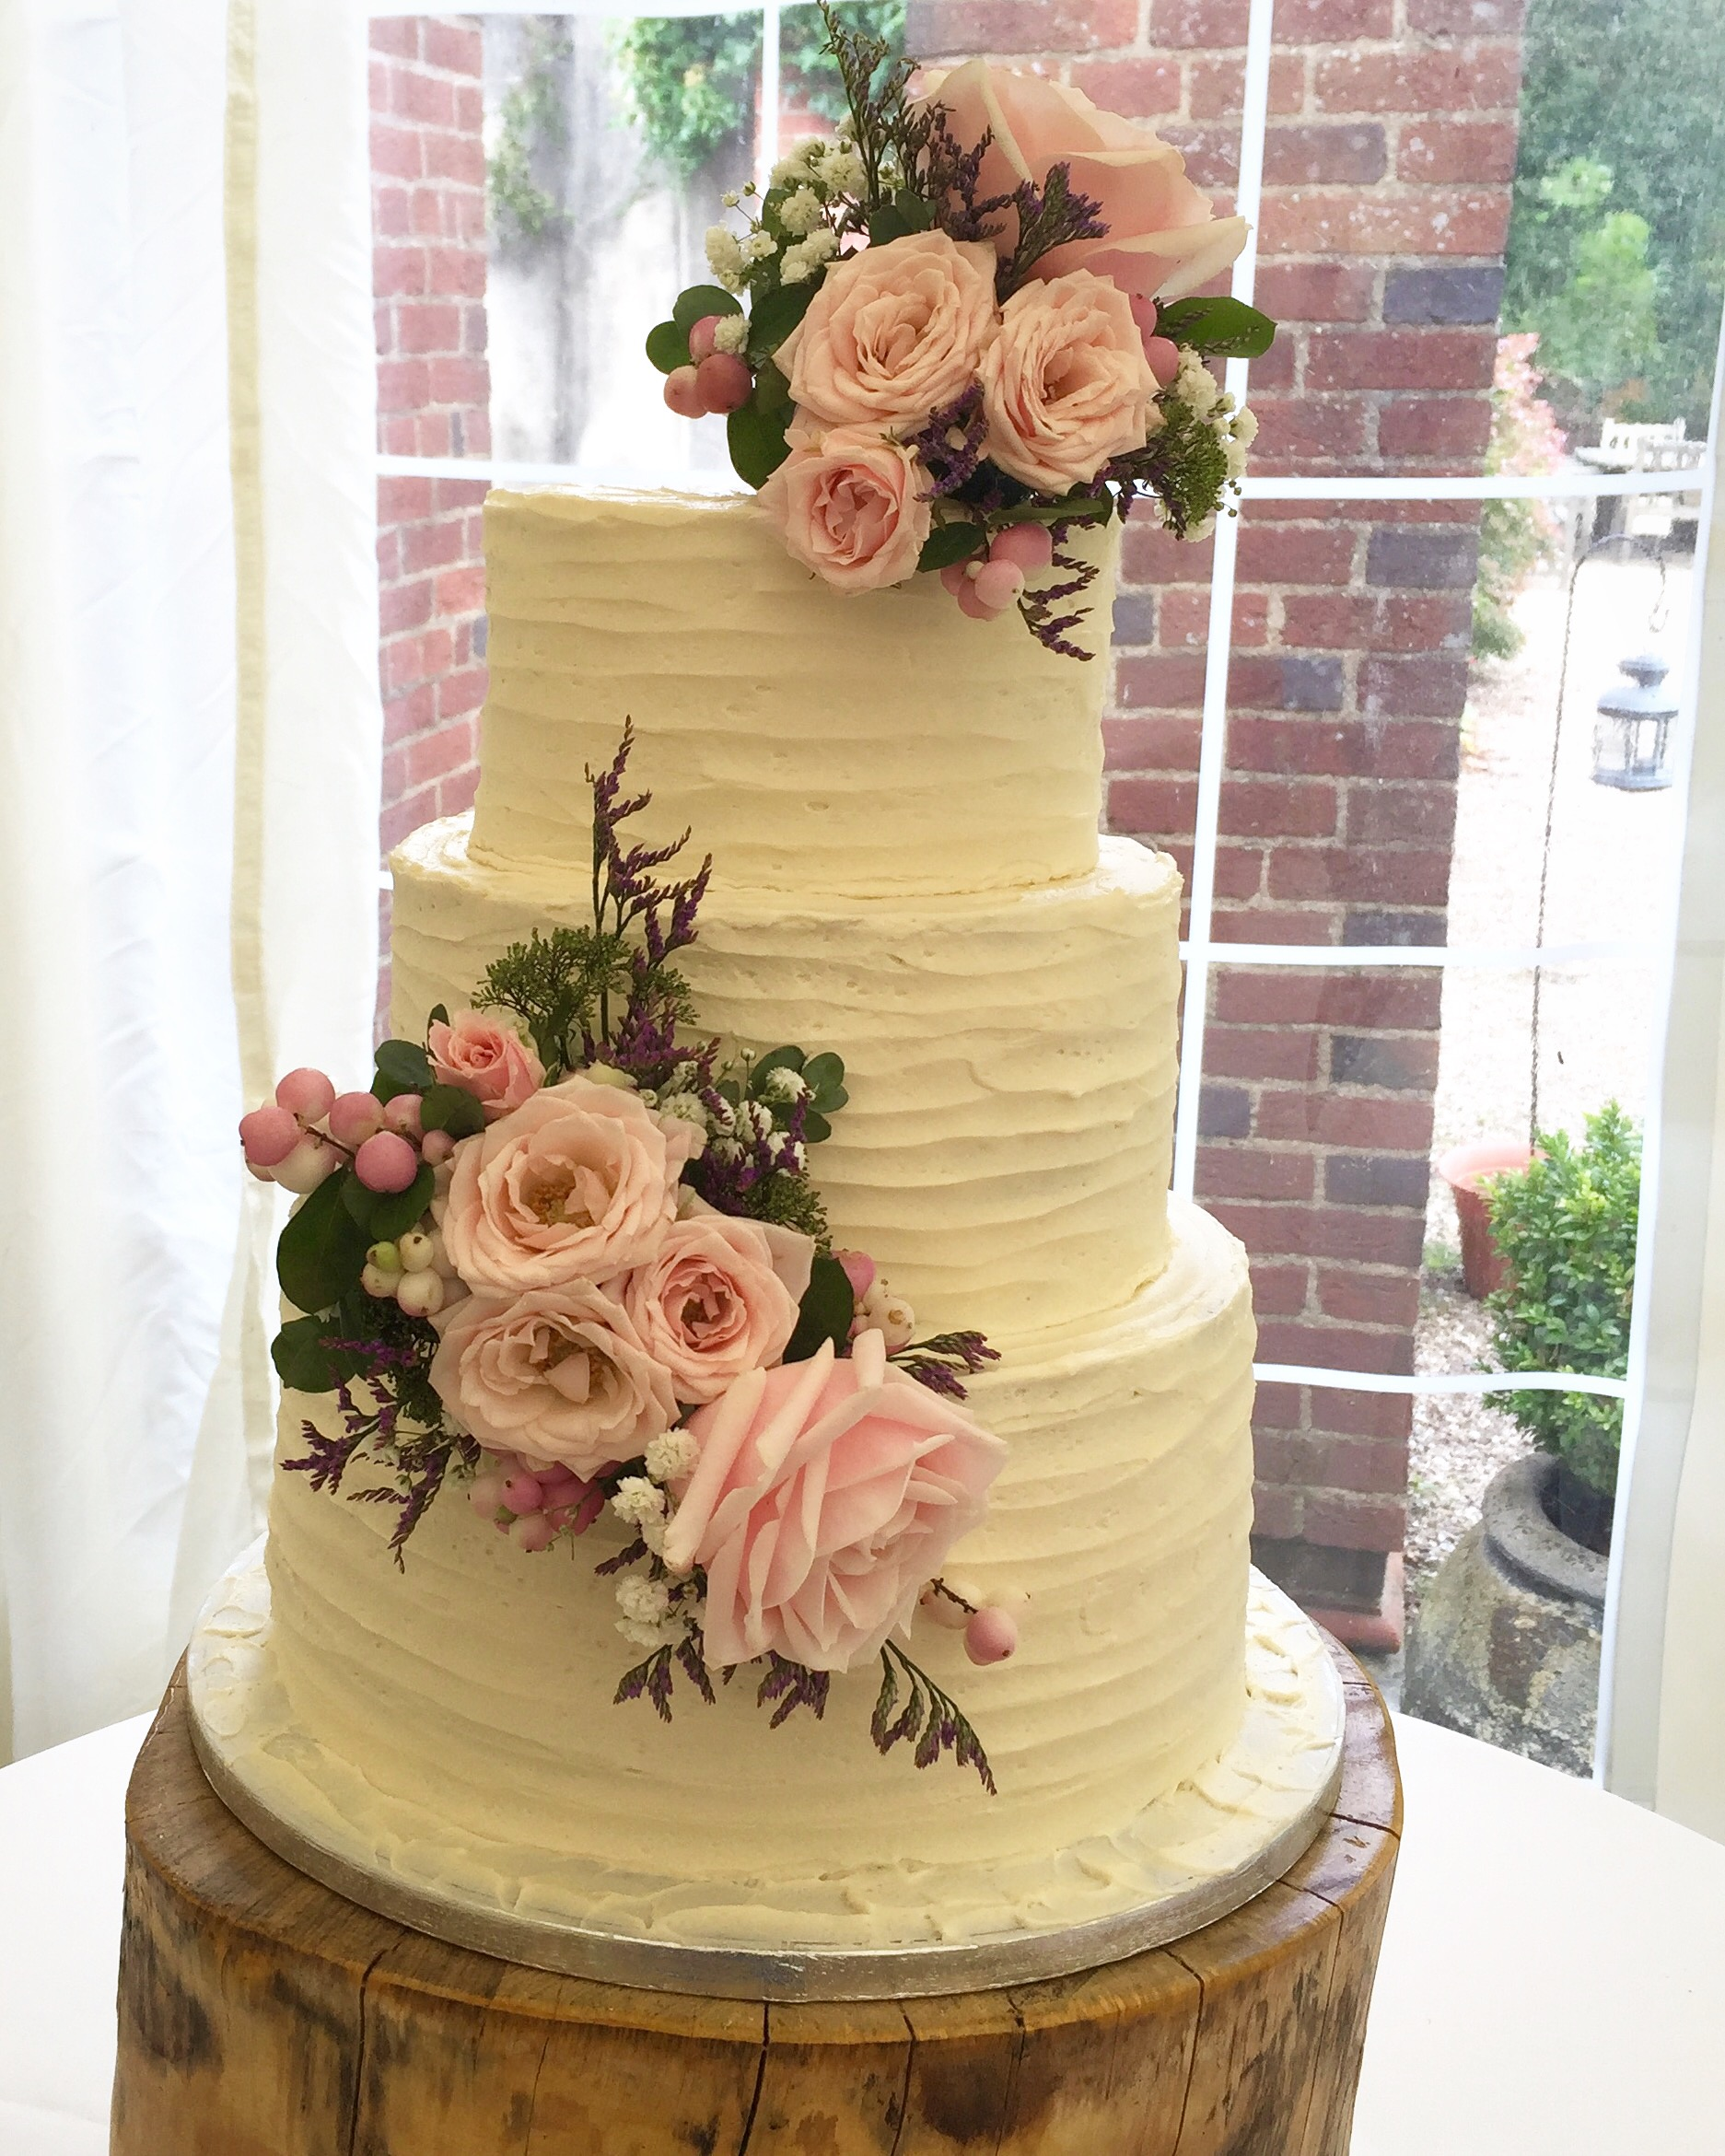 Butter-cream wedding cake